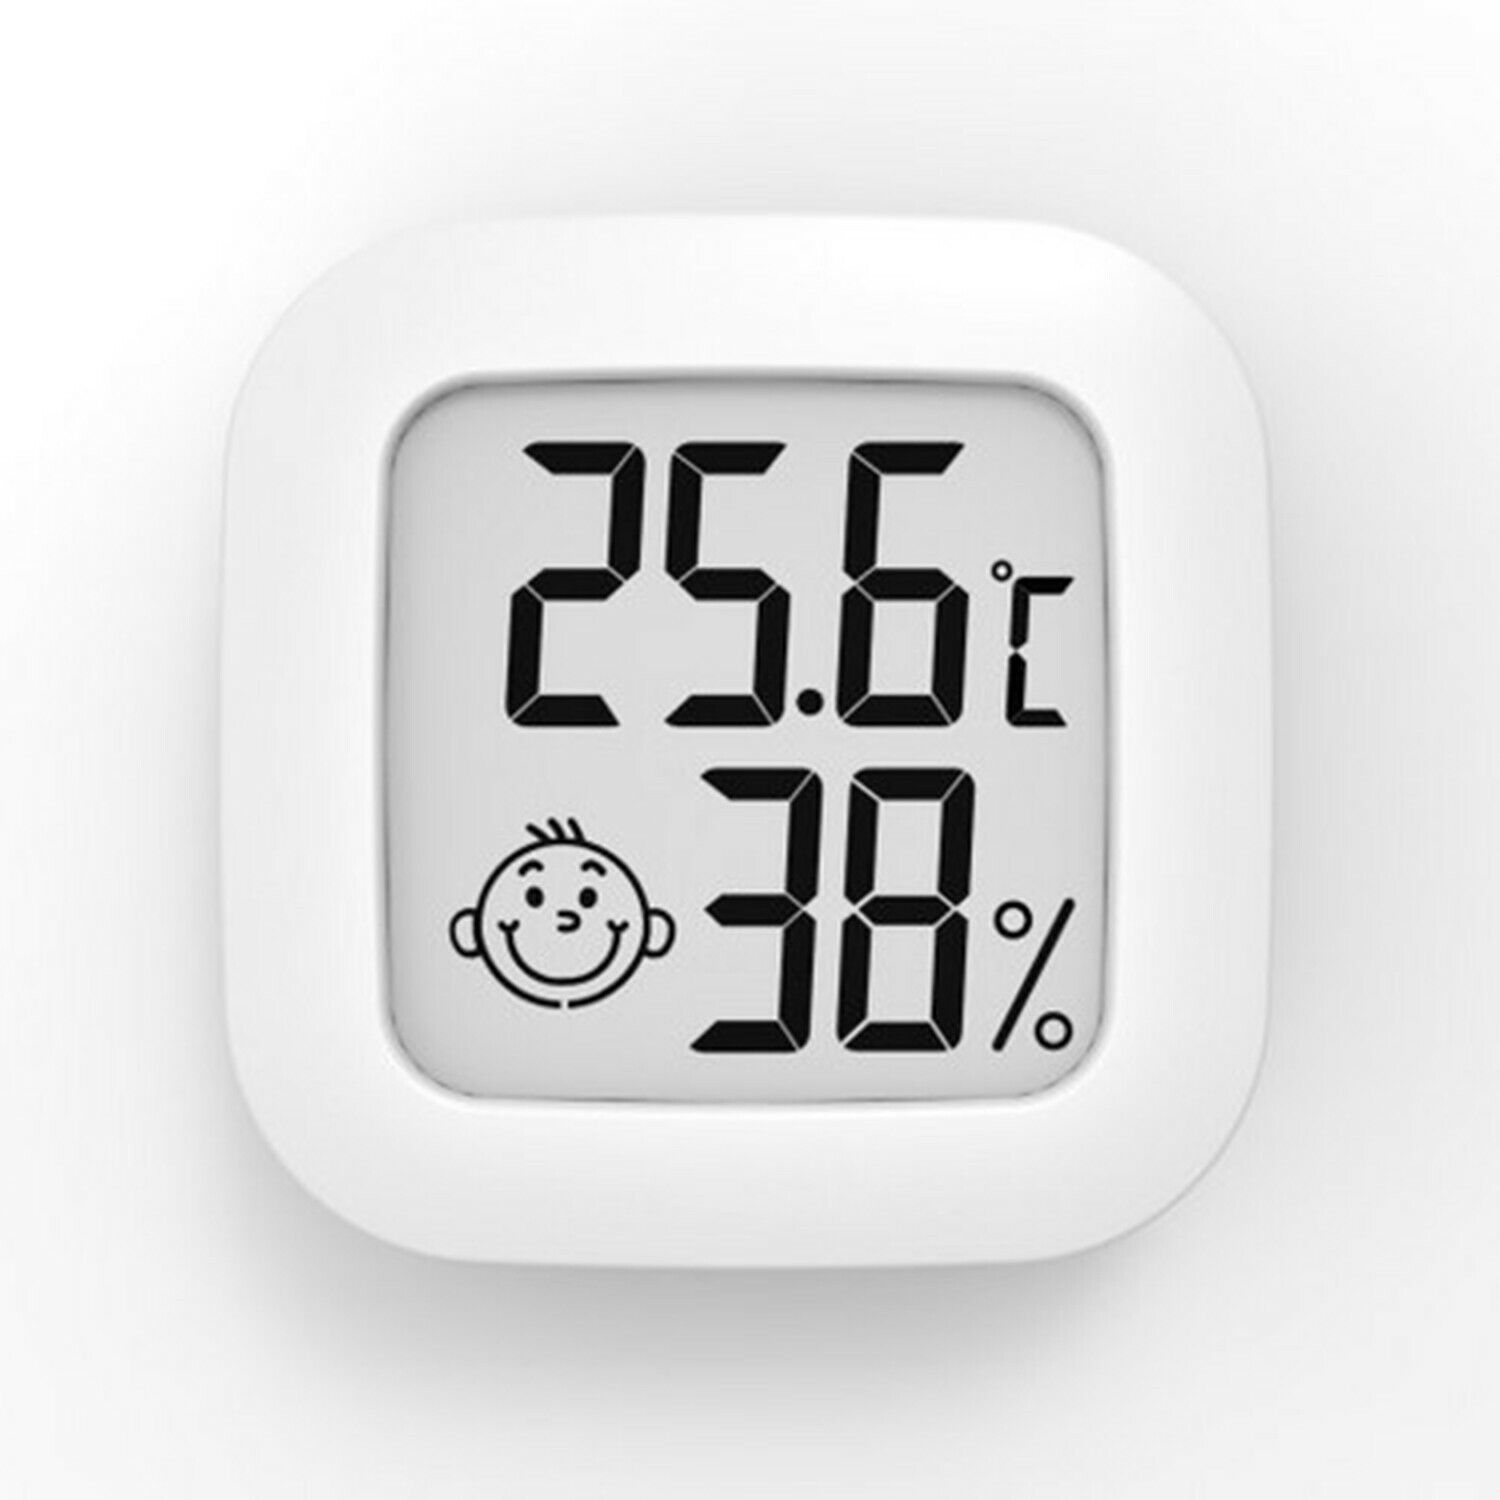 Indoor Room Mini Thermometer Hygrometer With Smiley-Face Temperature Humidity